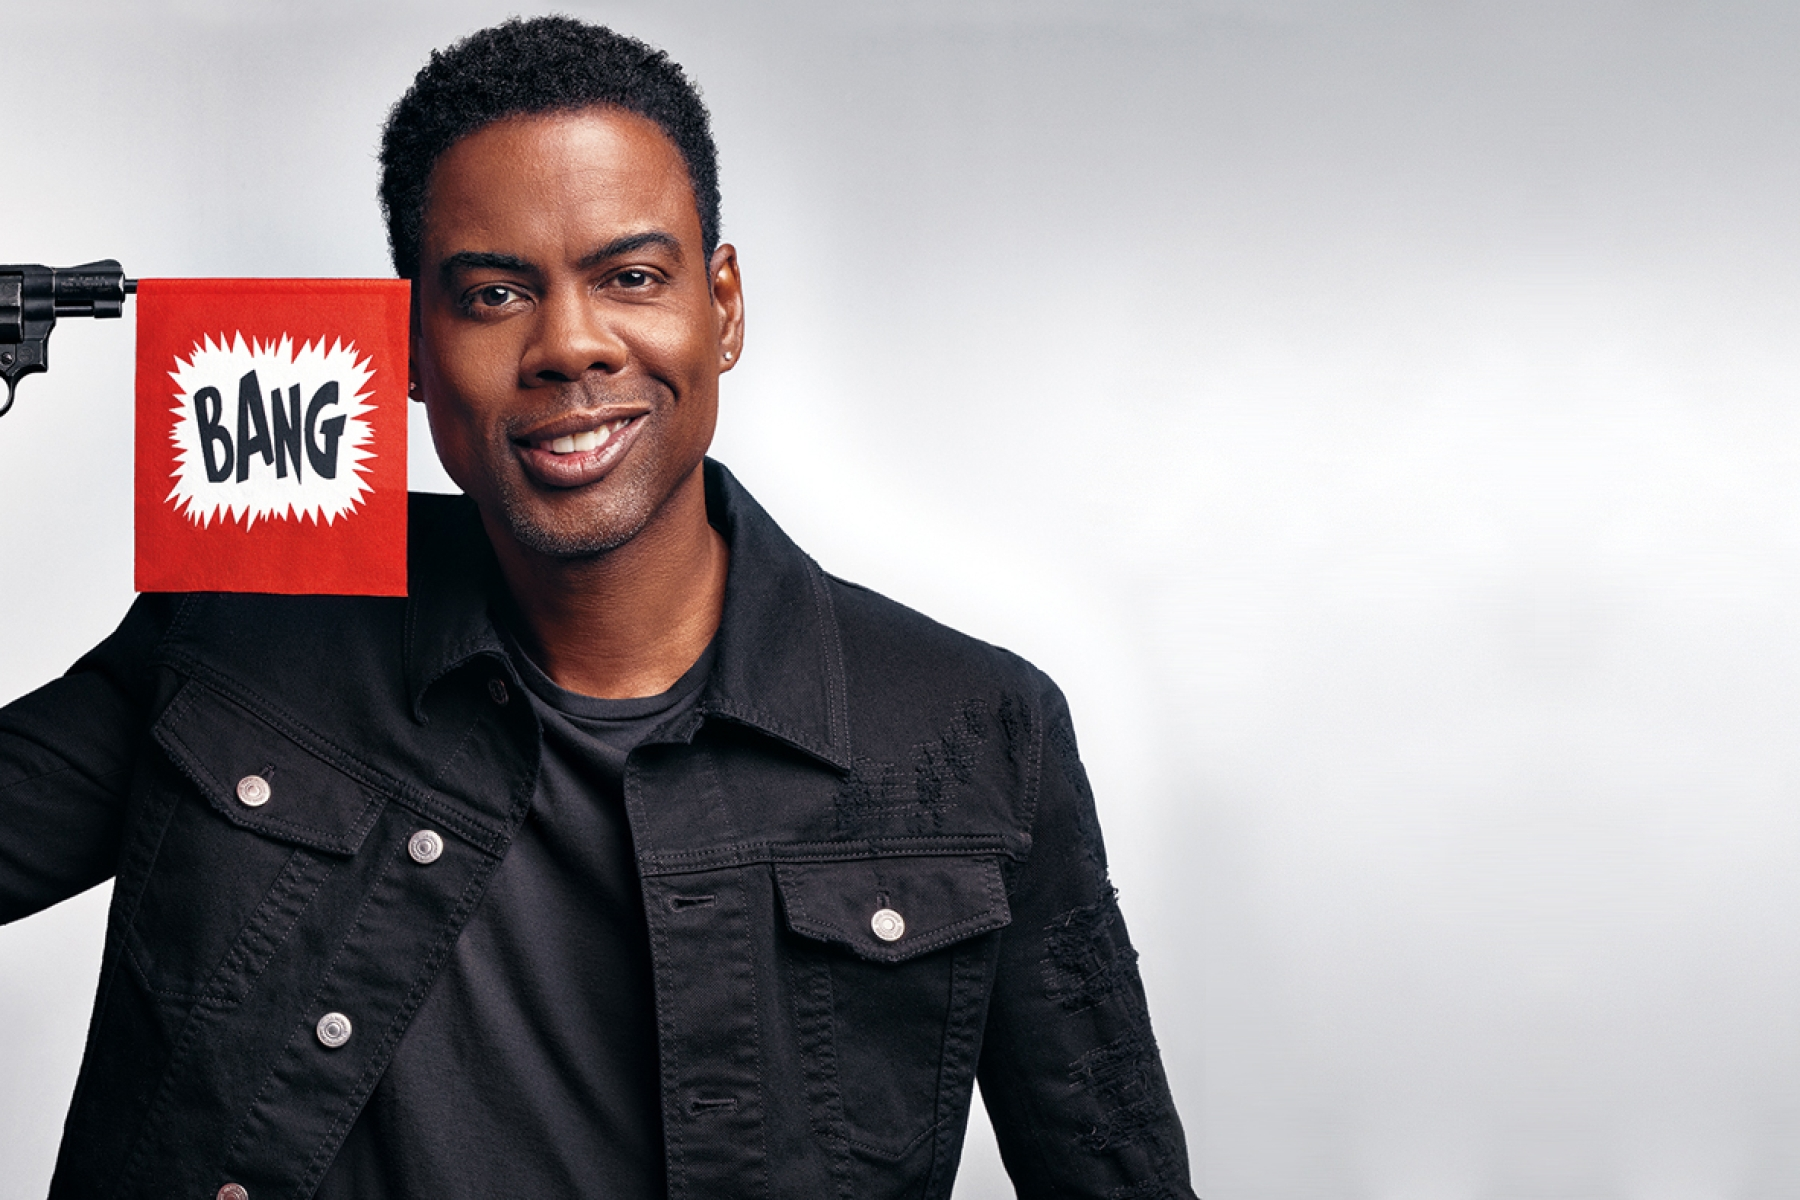 Chris Rock Cover Story On His New Tour And Starting Over Rolling Stone